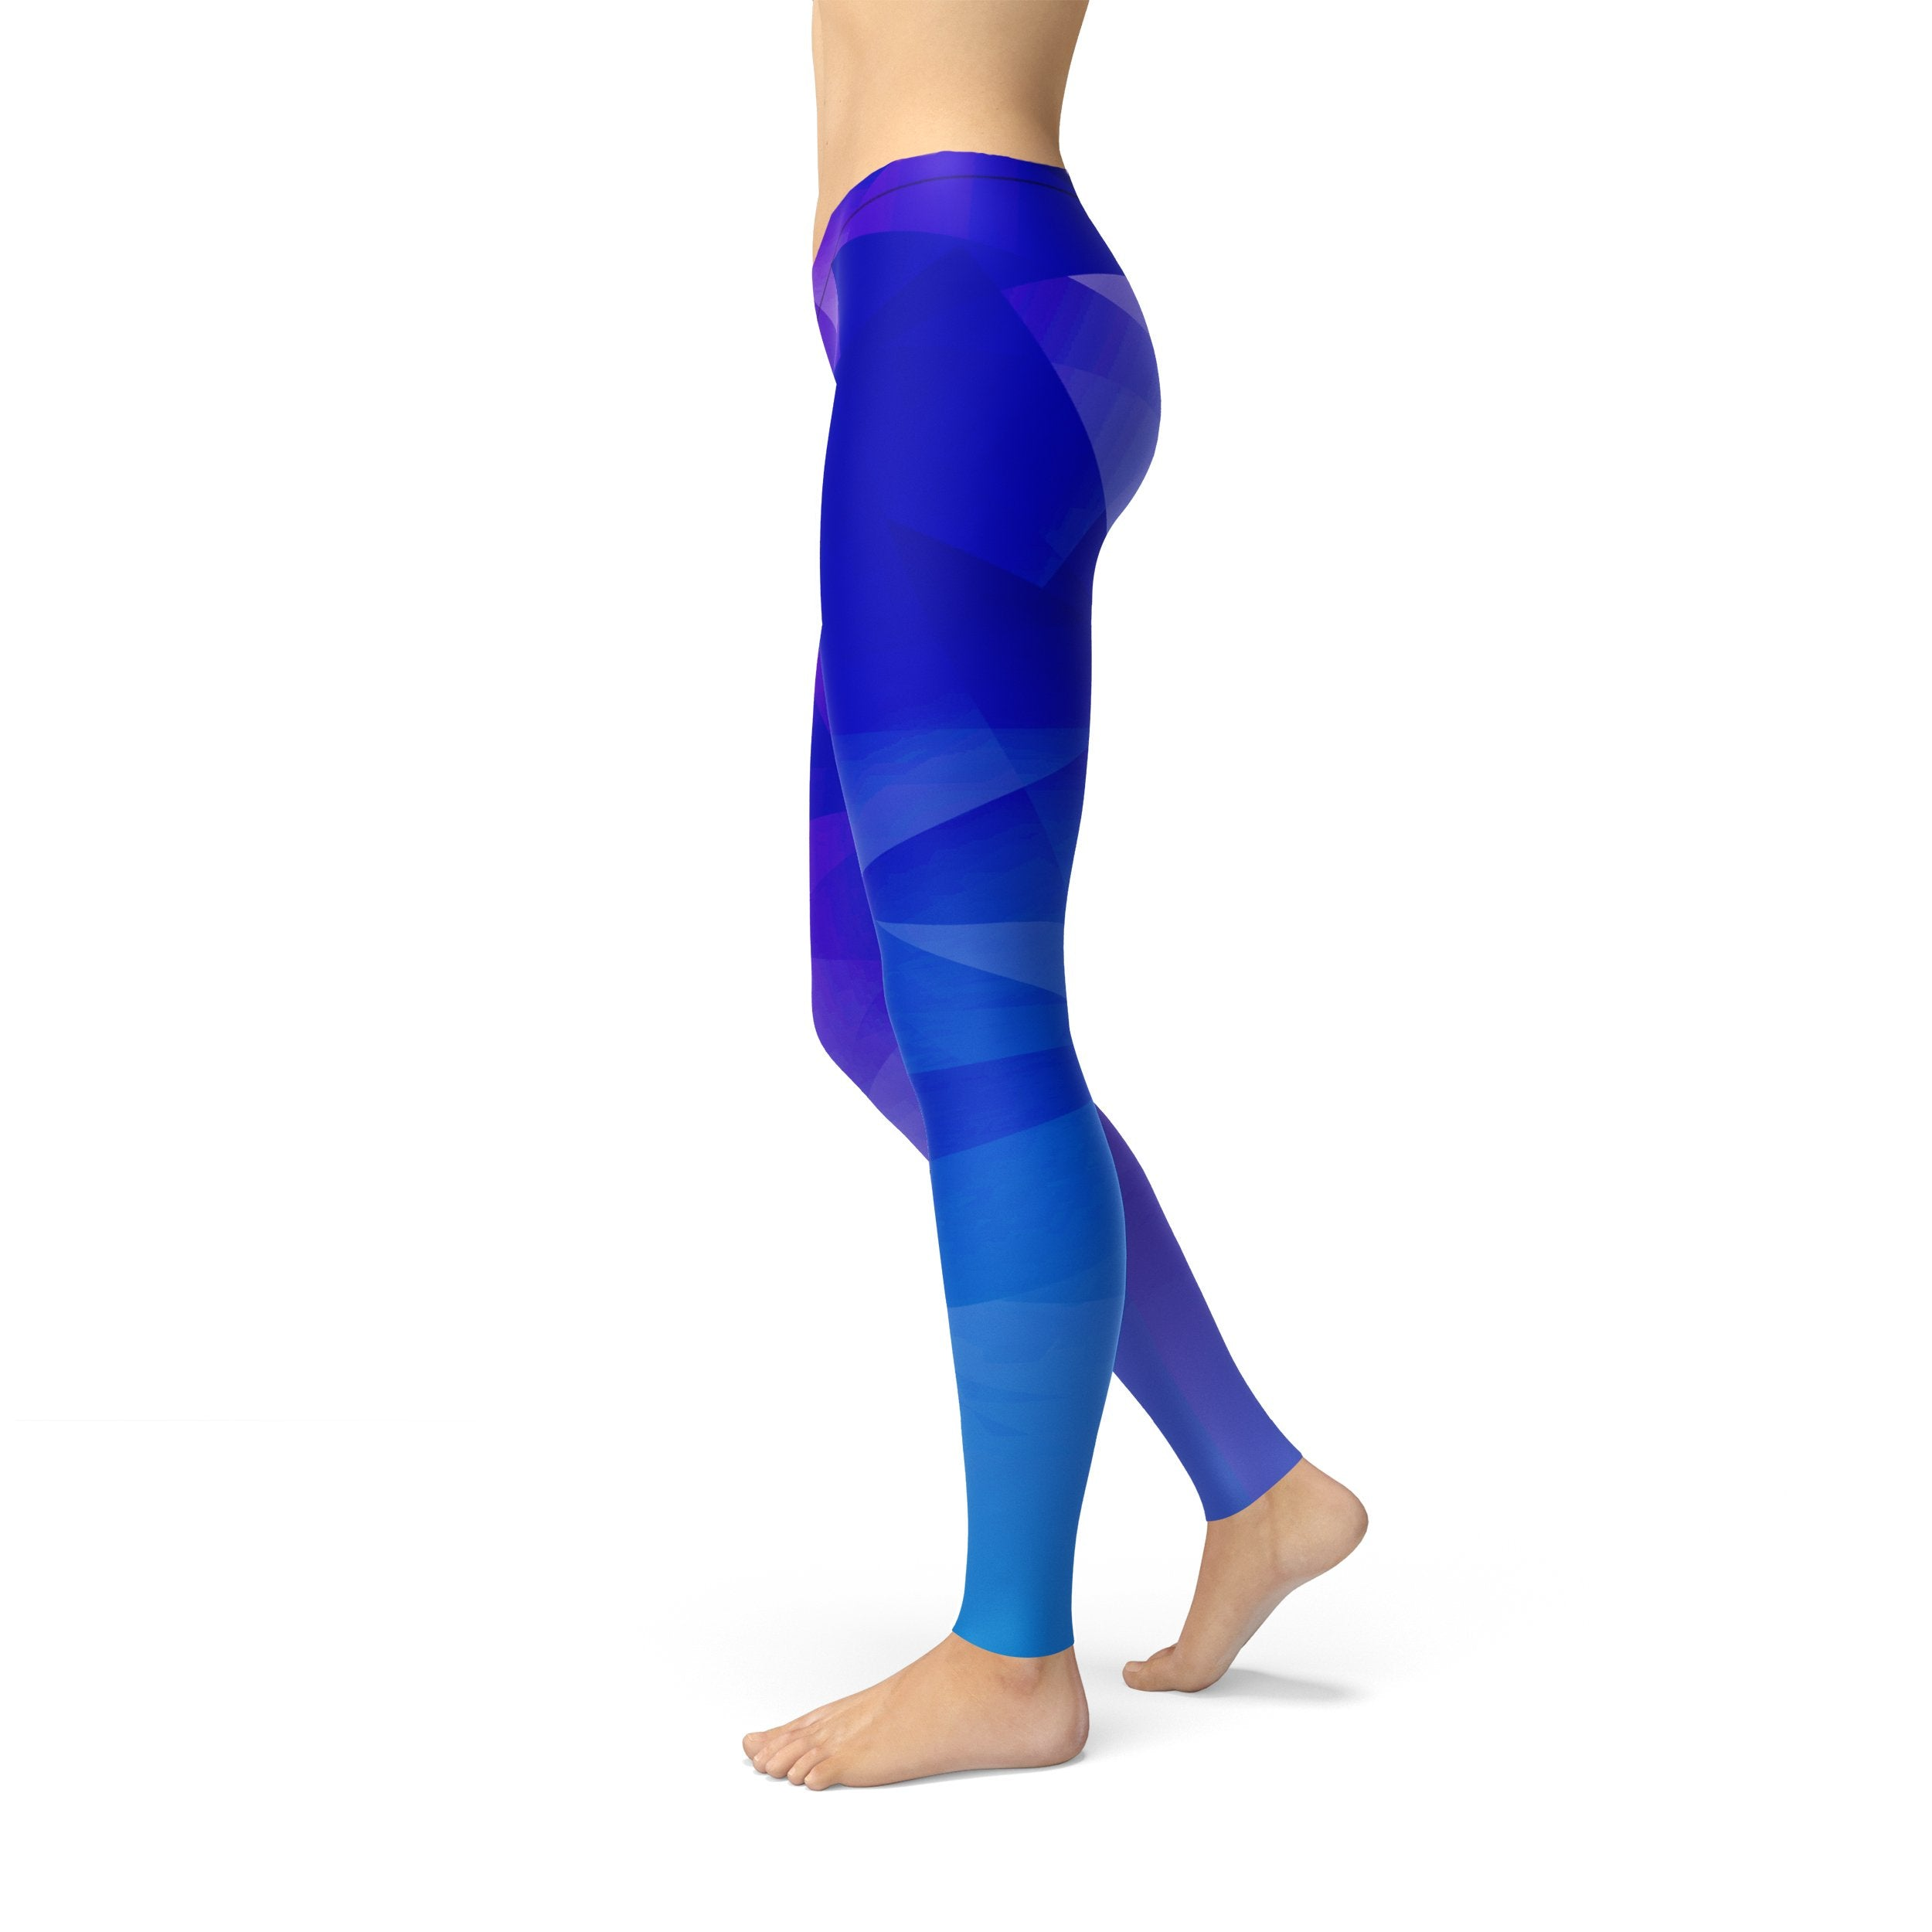 Blue Leggings - nuyubodysculpting.myshopify.com